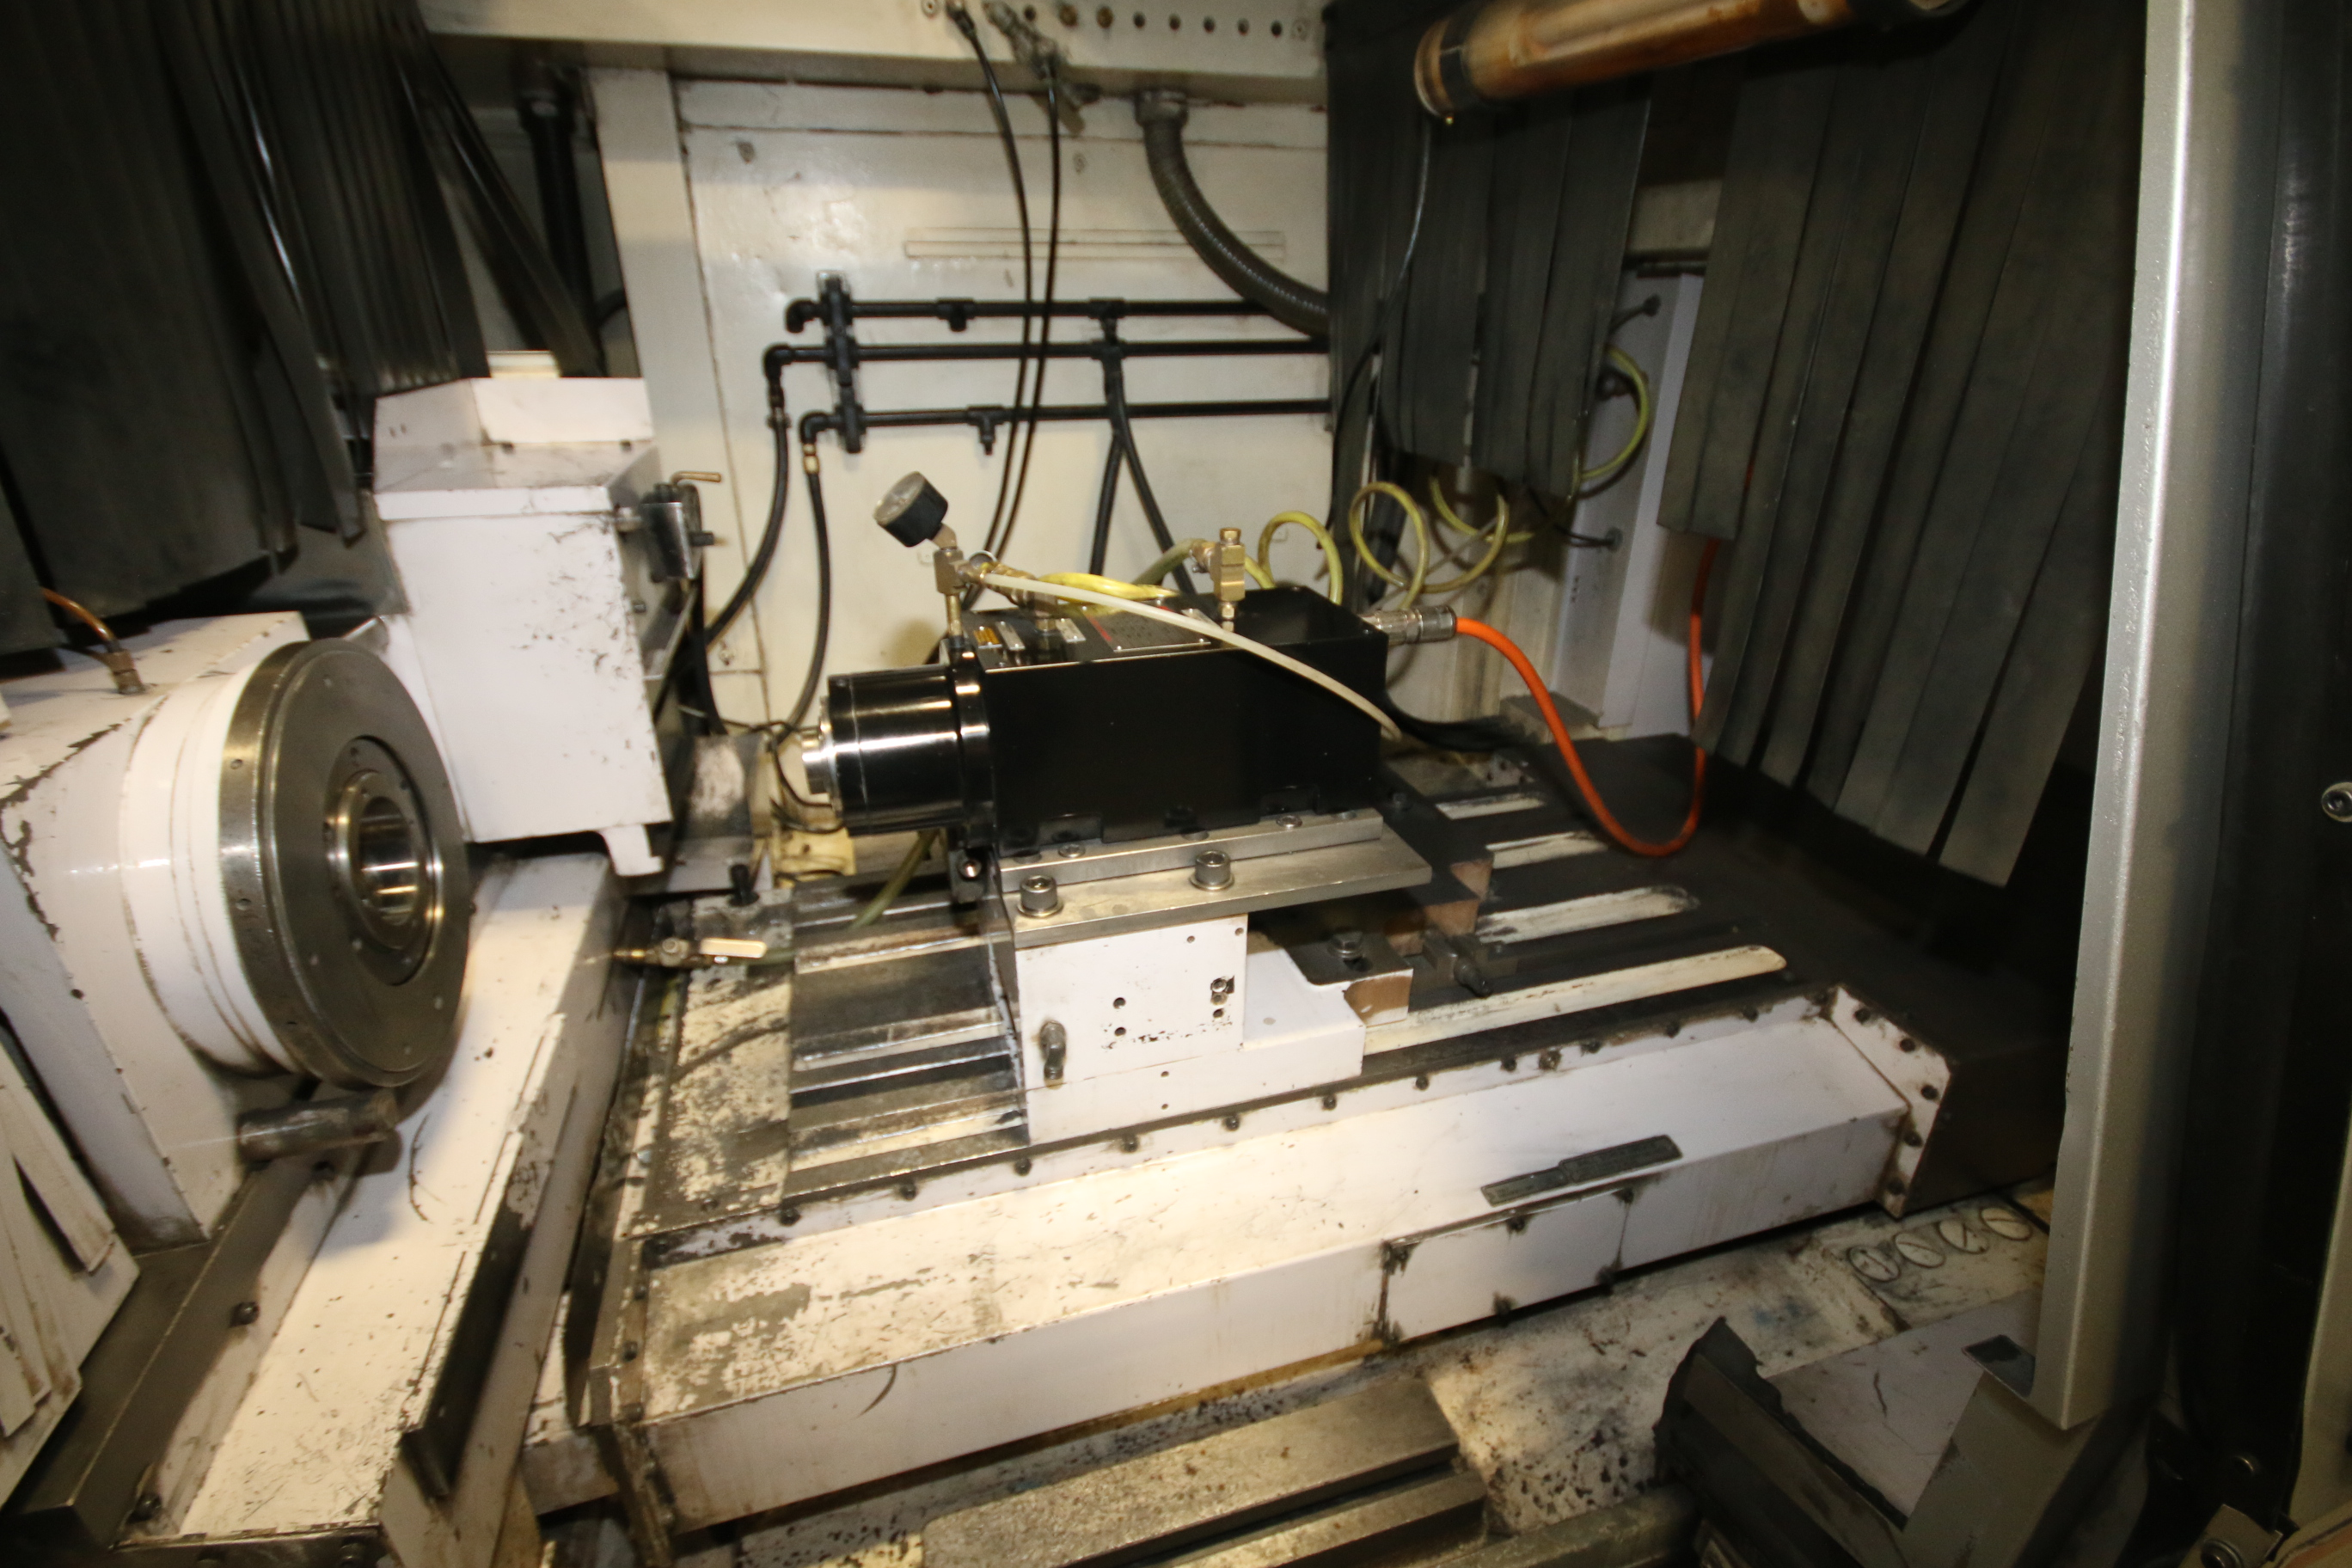 Lot 57 - Okuma CNC ID Grinder, Type G1-20N, S/N 0810-0420 with Assorted Spindles, Hydraulic System and